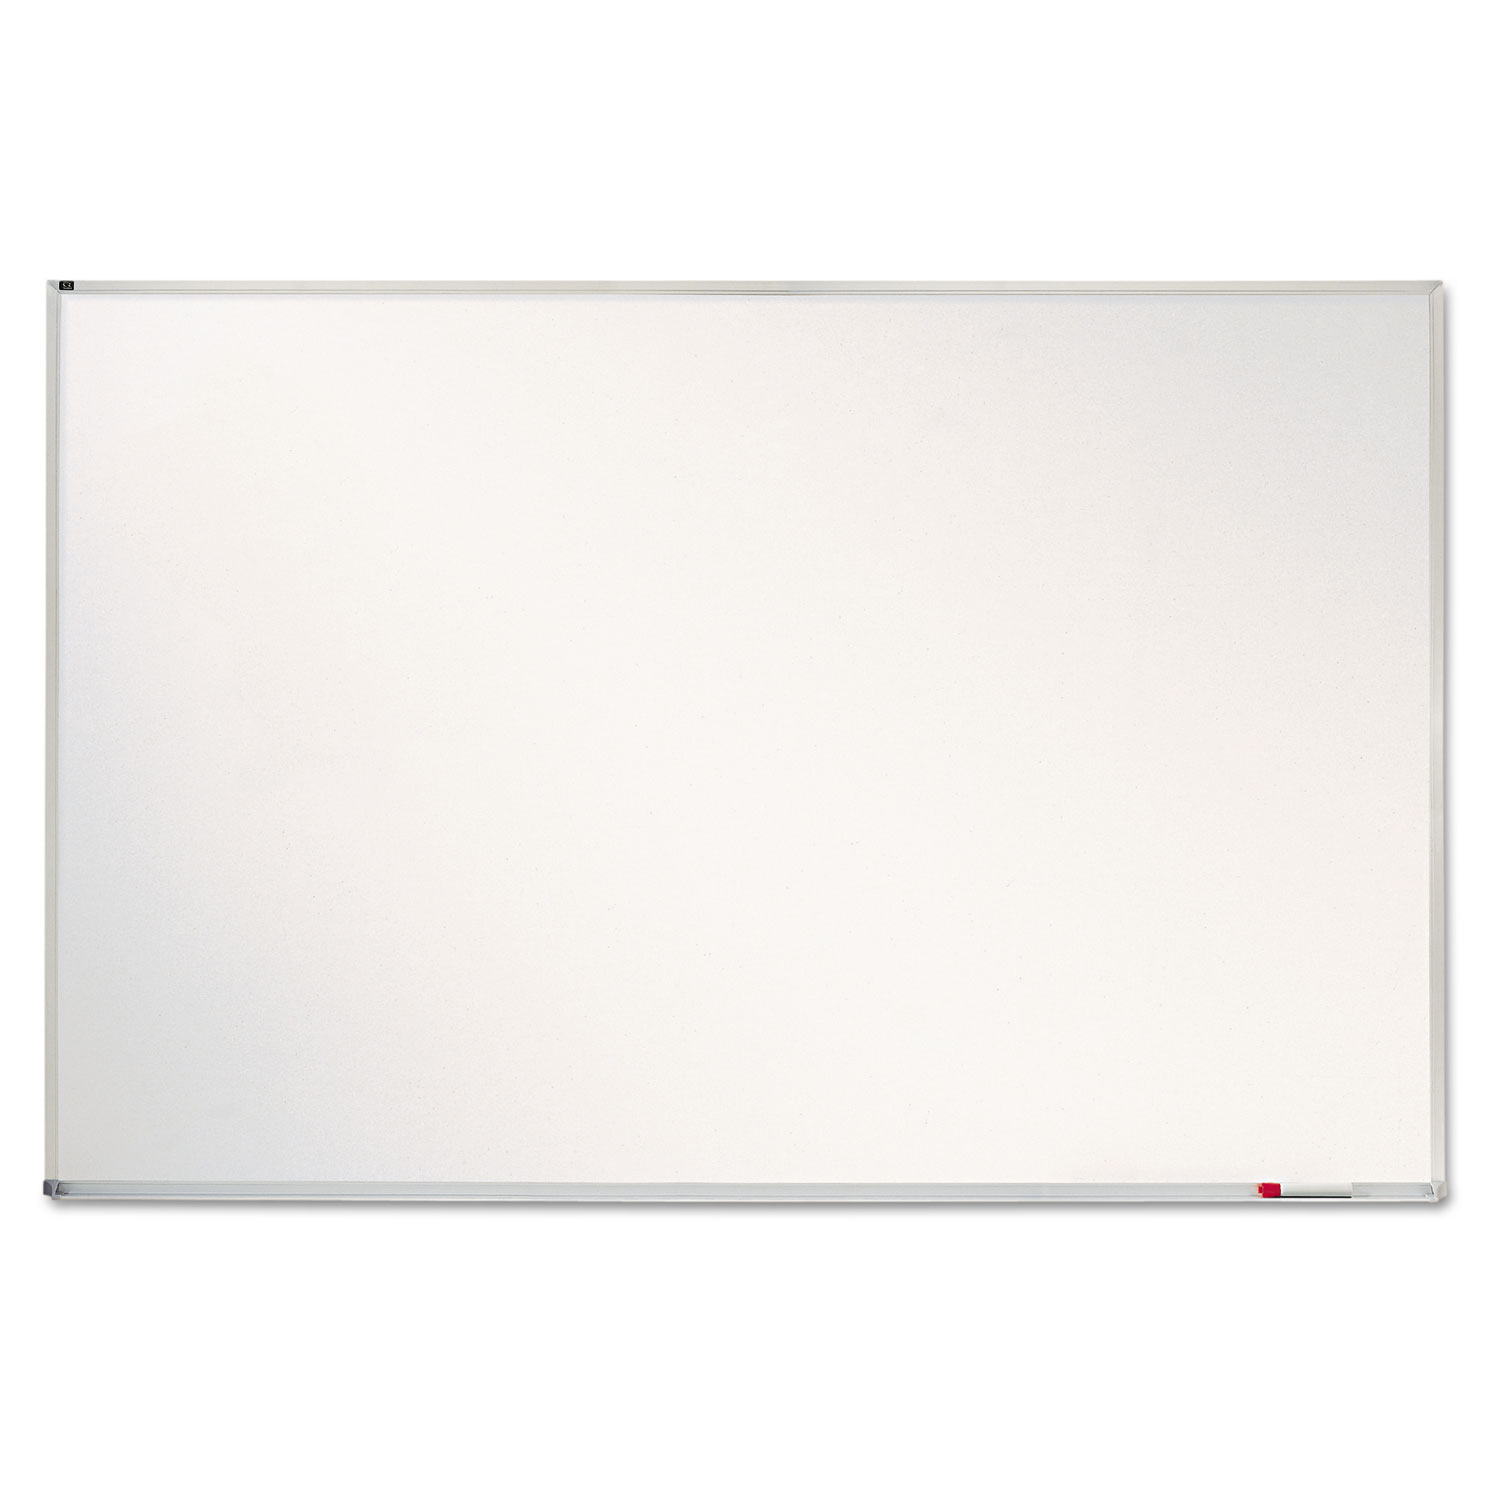 Porcelain Magnetic Whiteboard by Quartet® QRTPPA406 - OnTimeSupplies.com